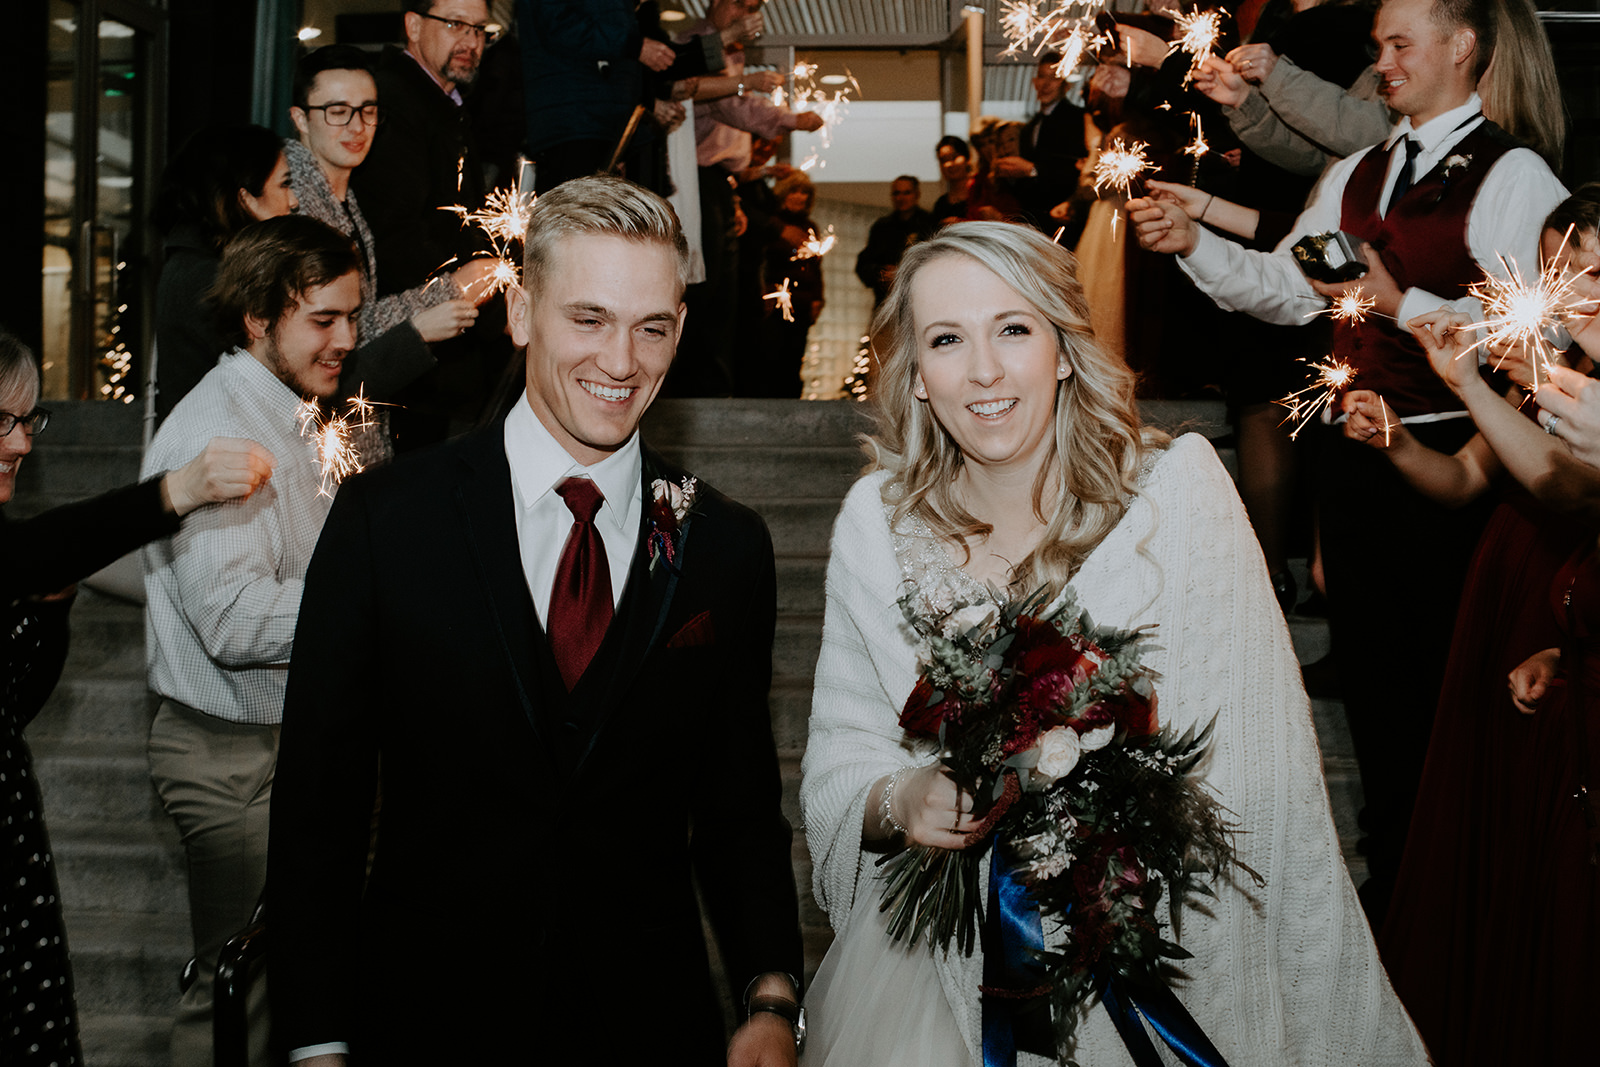 Smiling bride and groom walking down steps while guests hold sparklers during exit